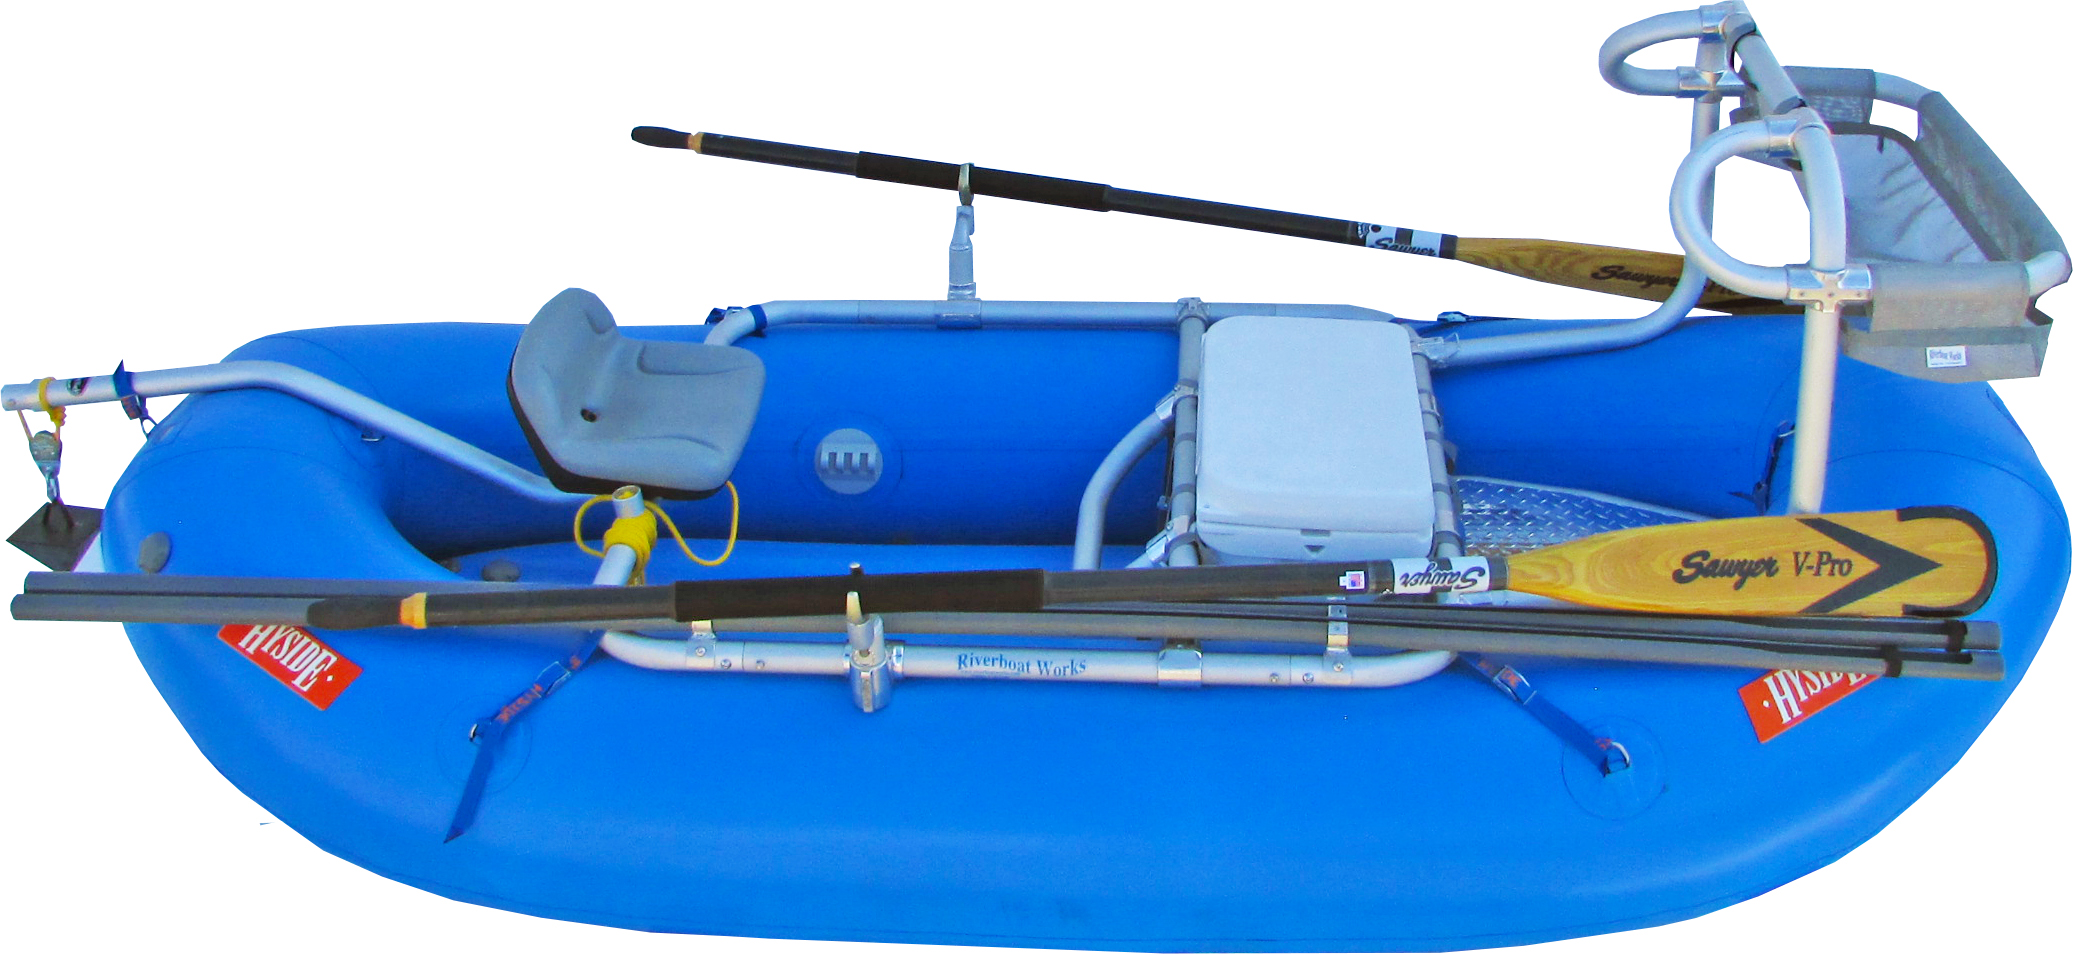 Click image for larger version  Name:raft1.jpg Views:306 Size:1.01 MB ID:9649